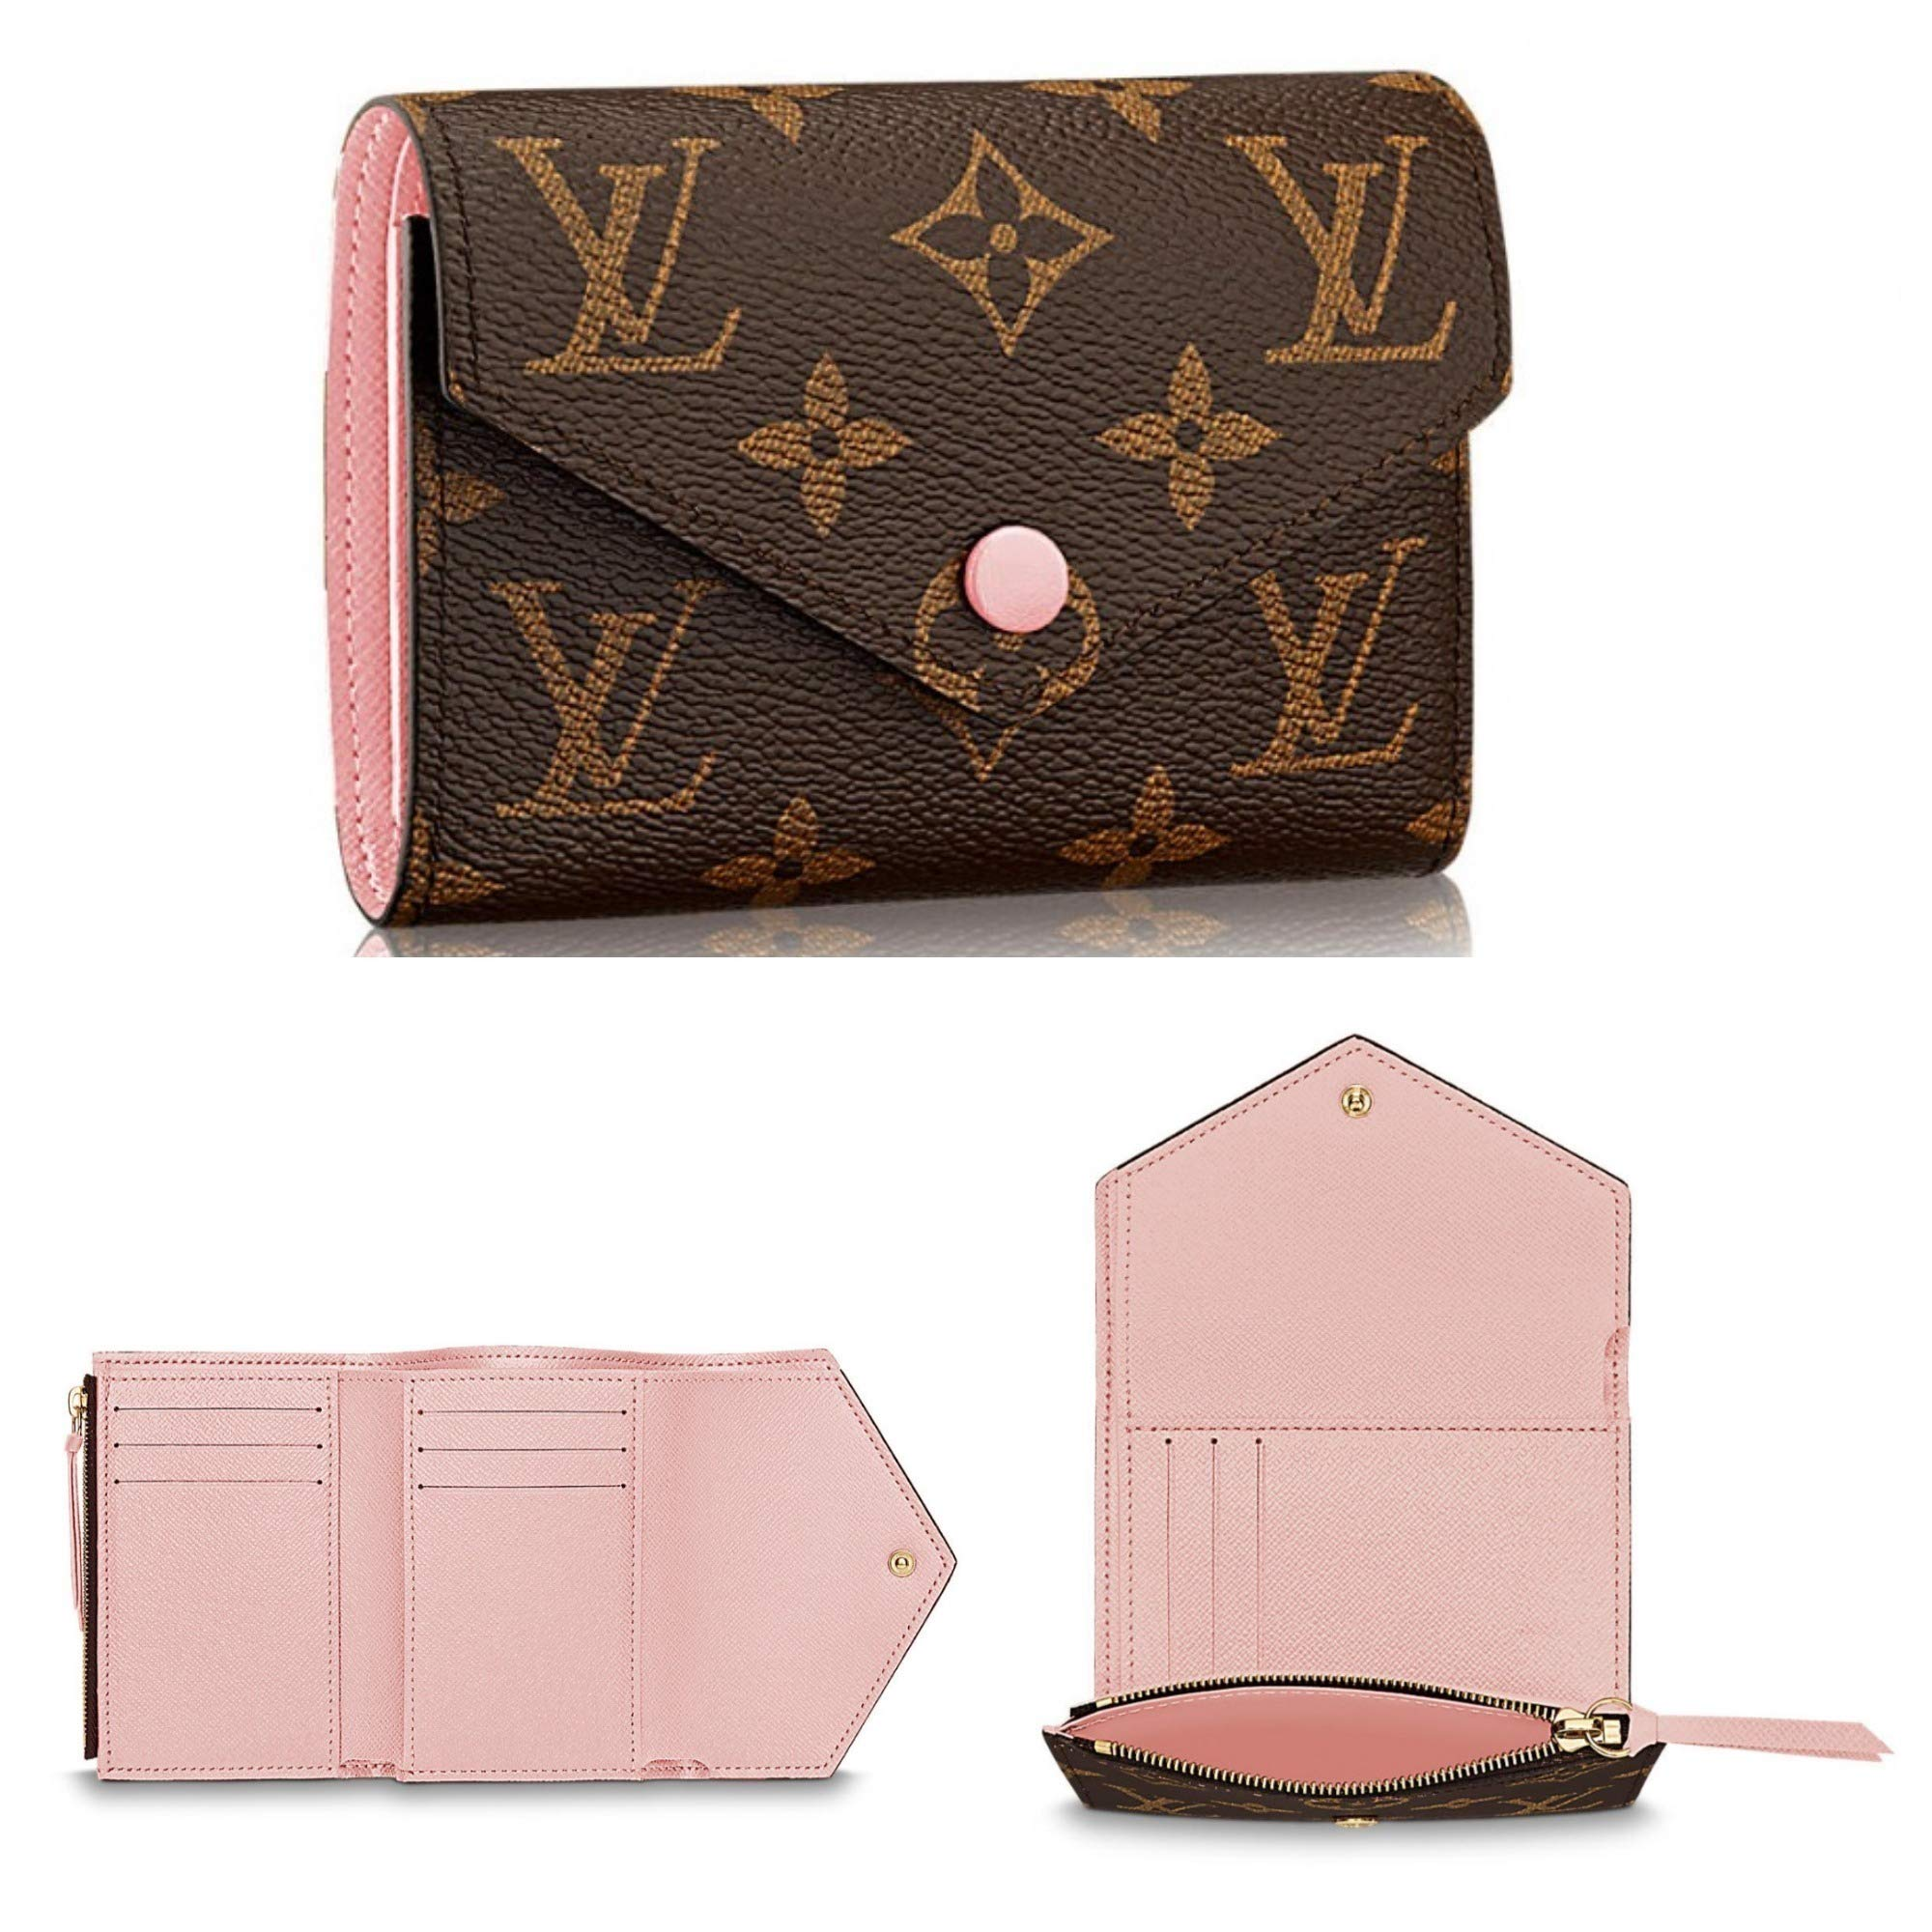 Victorine Style Monogram Canvas Wallet Rfid with Rose Ballerina Lining for Woman By Look At My Bags